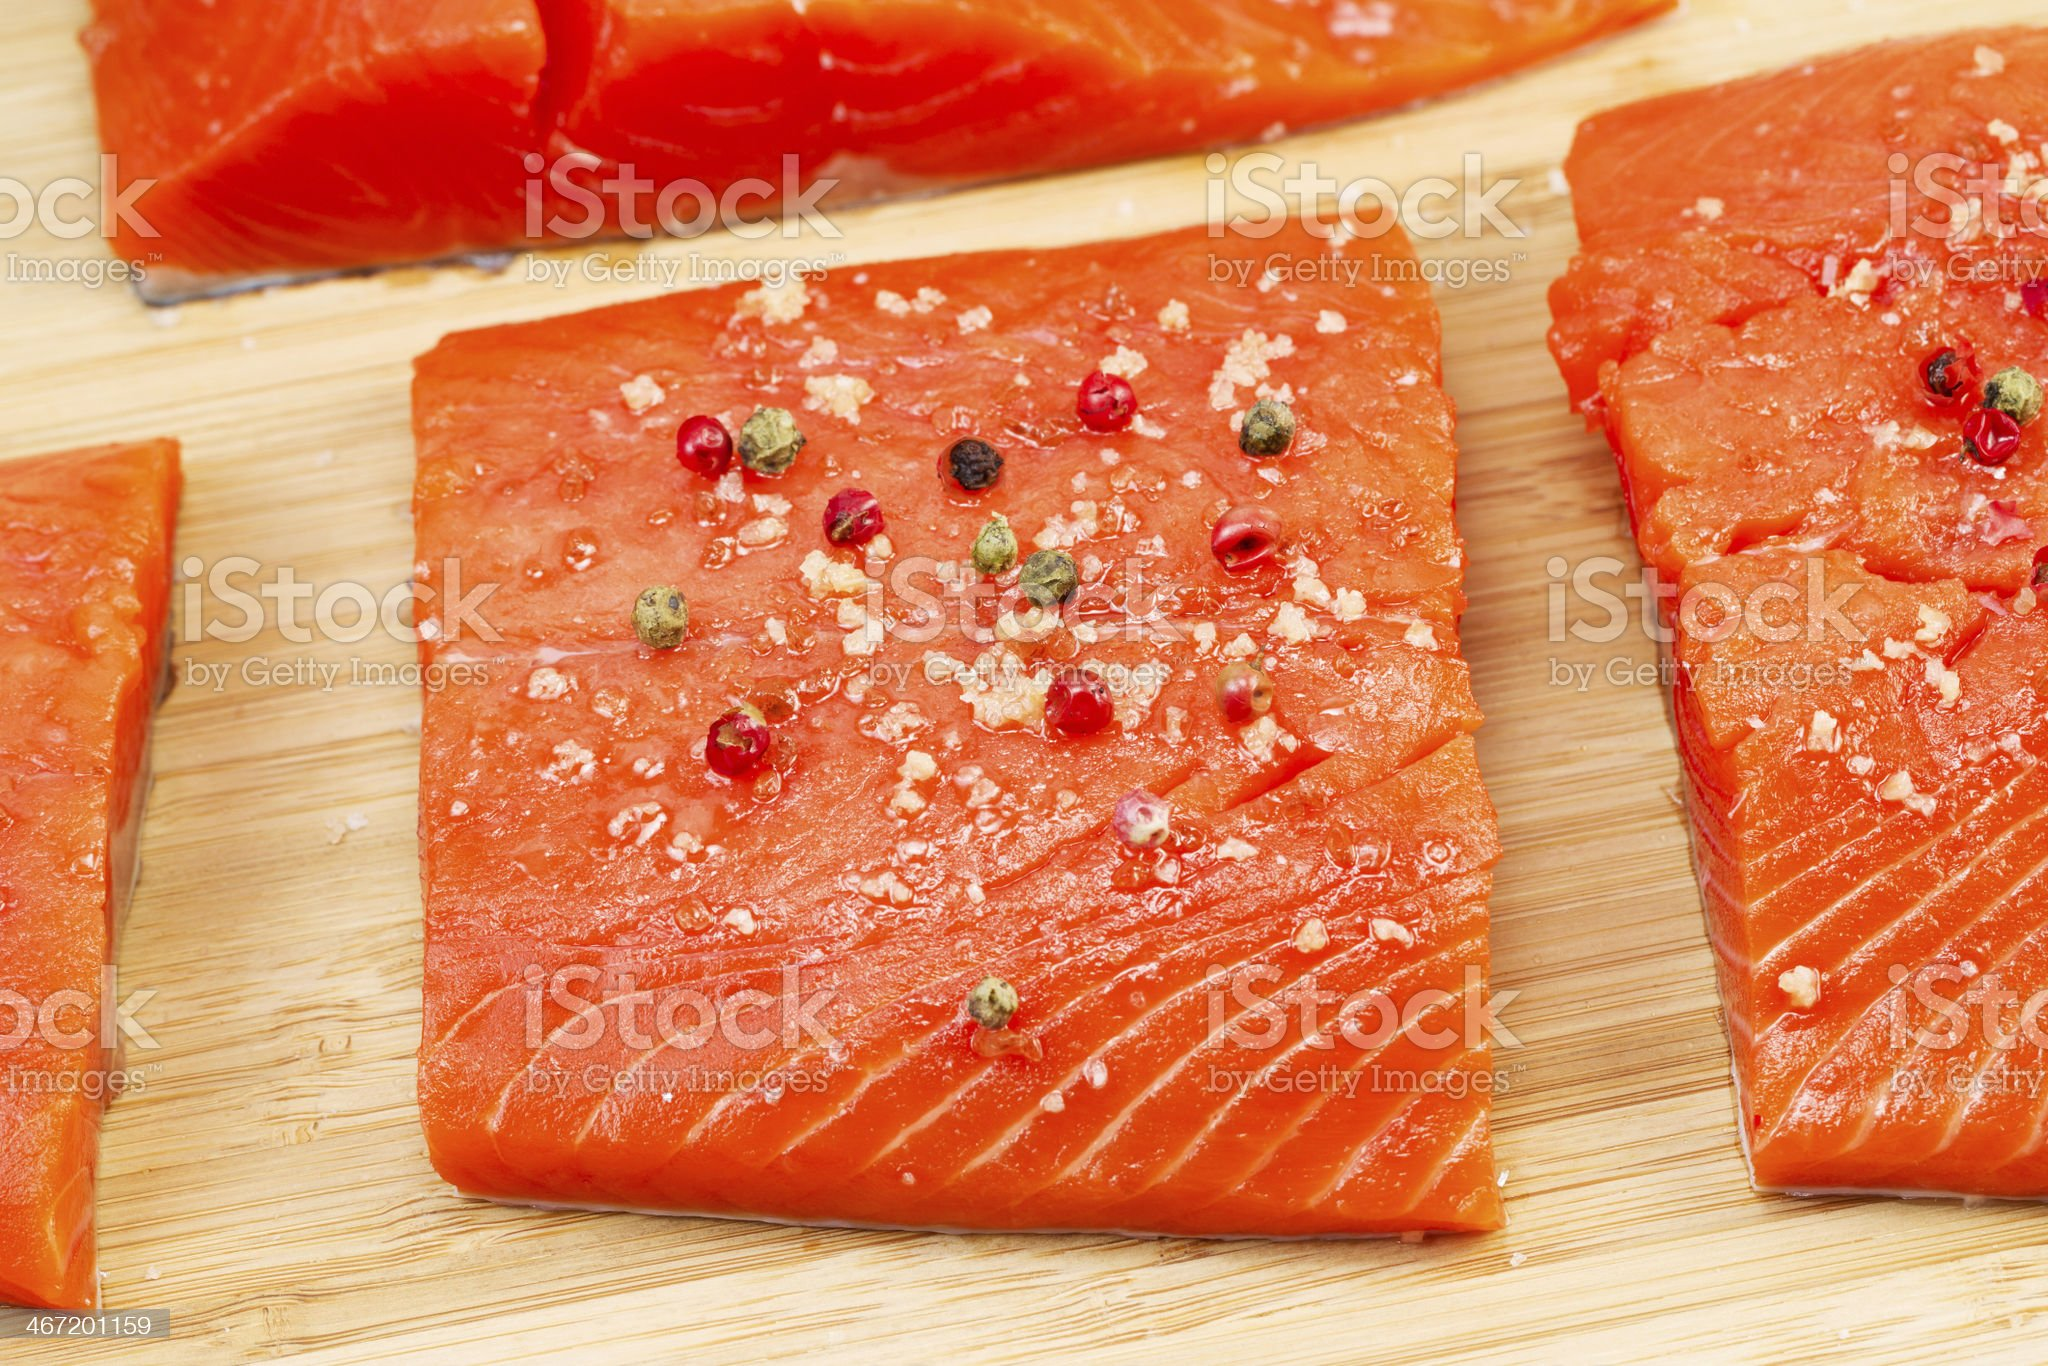 Wild Salmon coated with Sea Salt and Peppercorn royalty-free stock photo